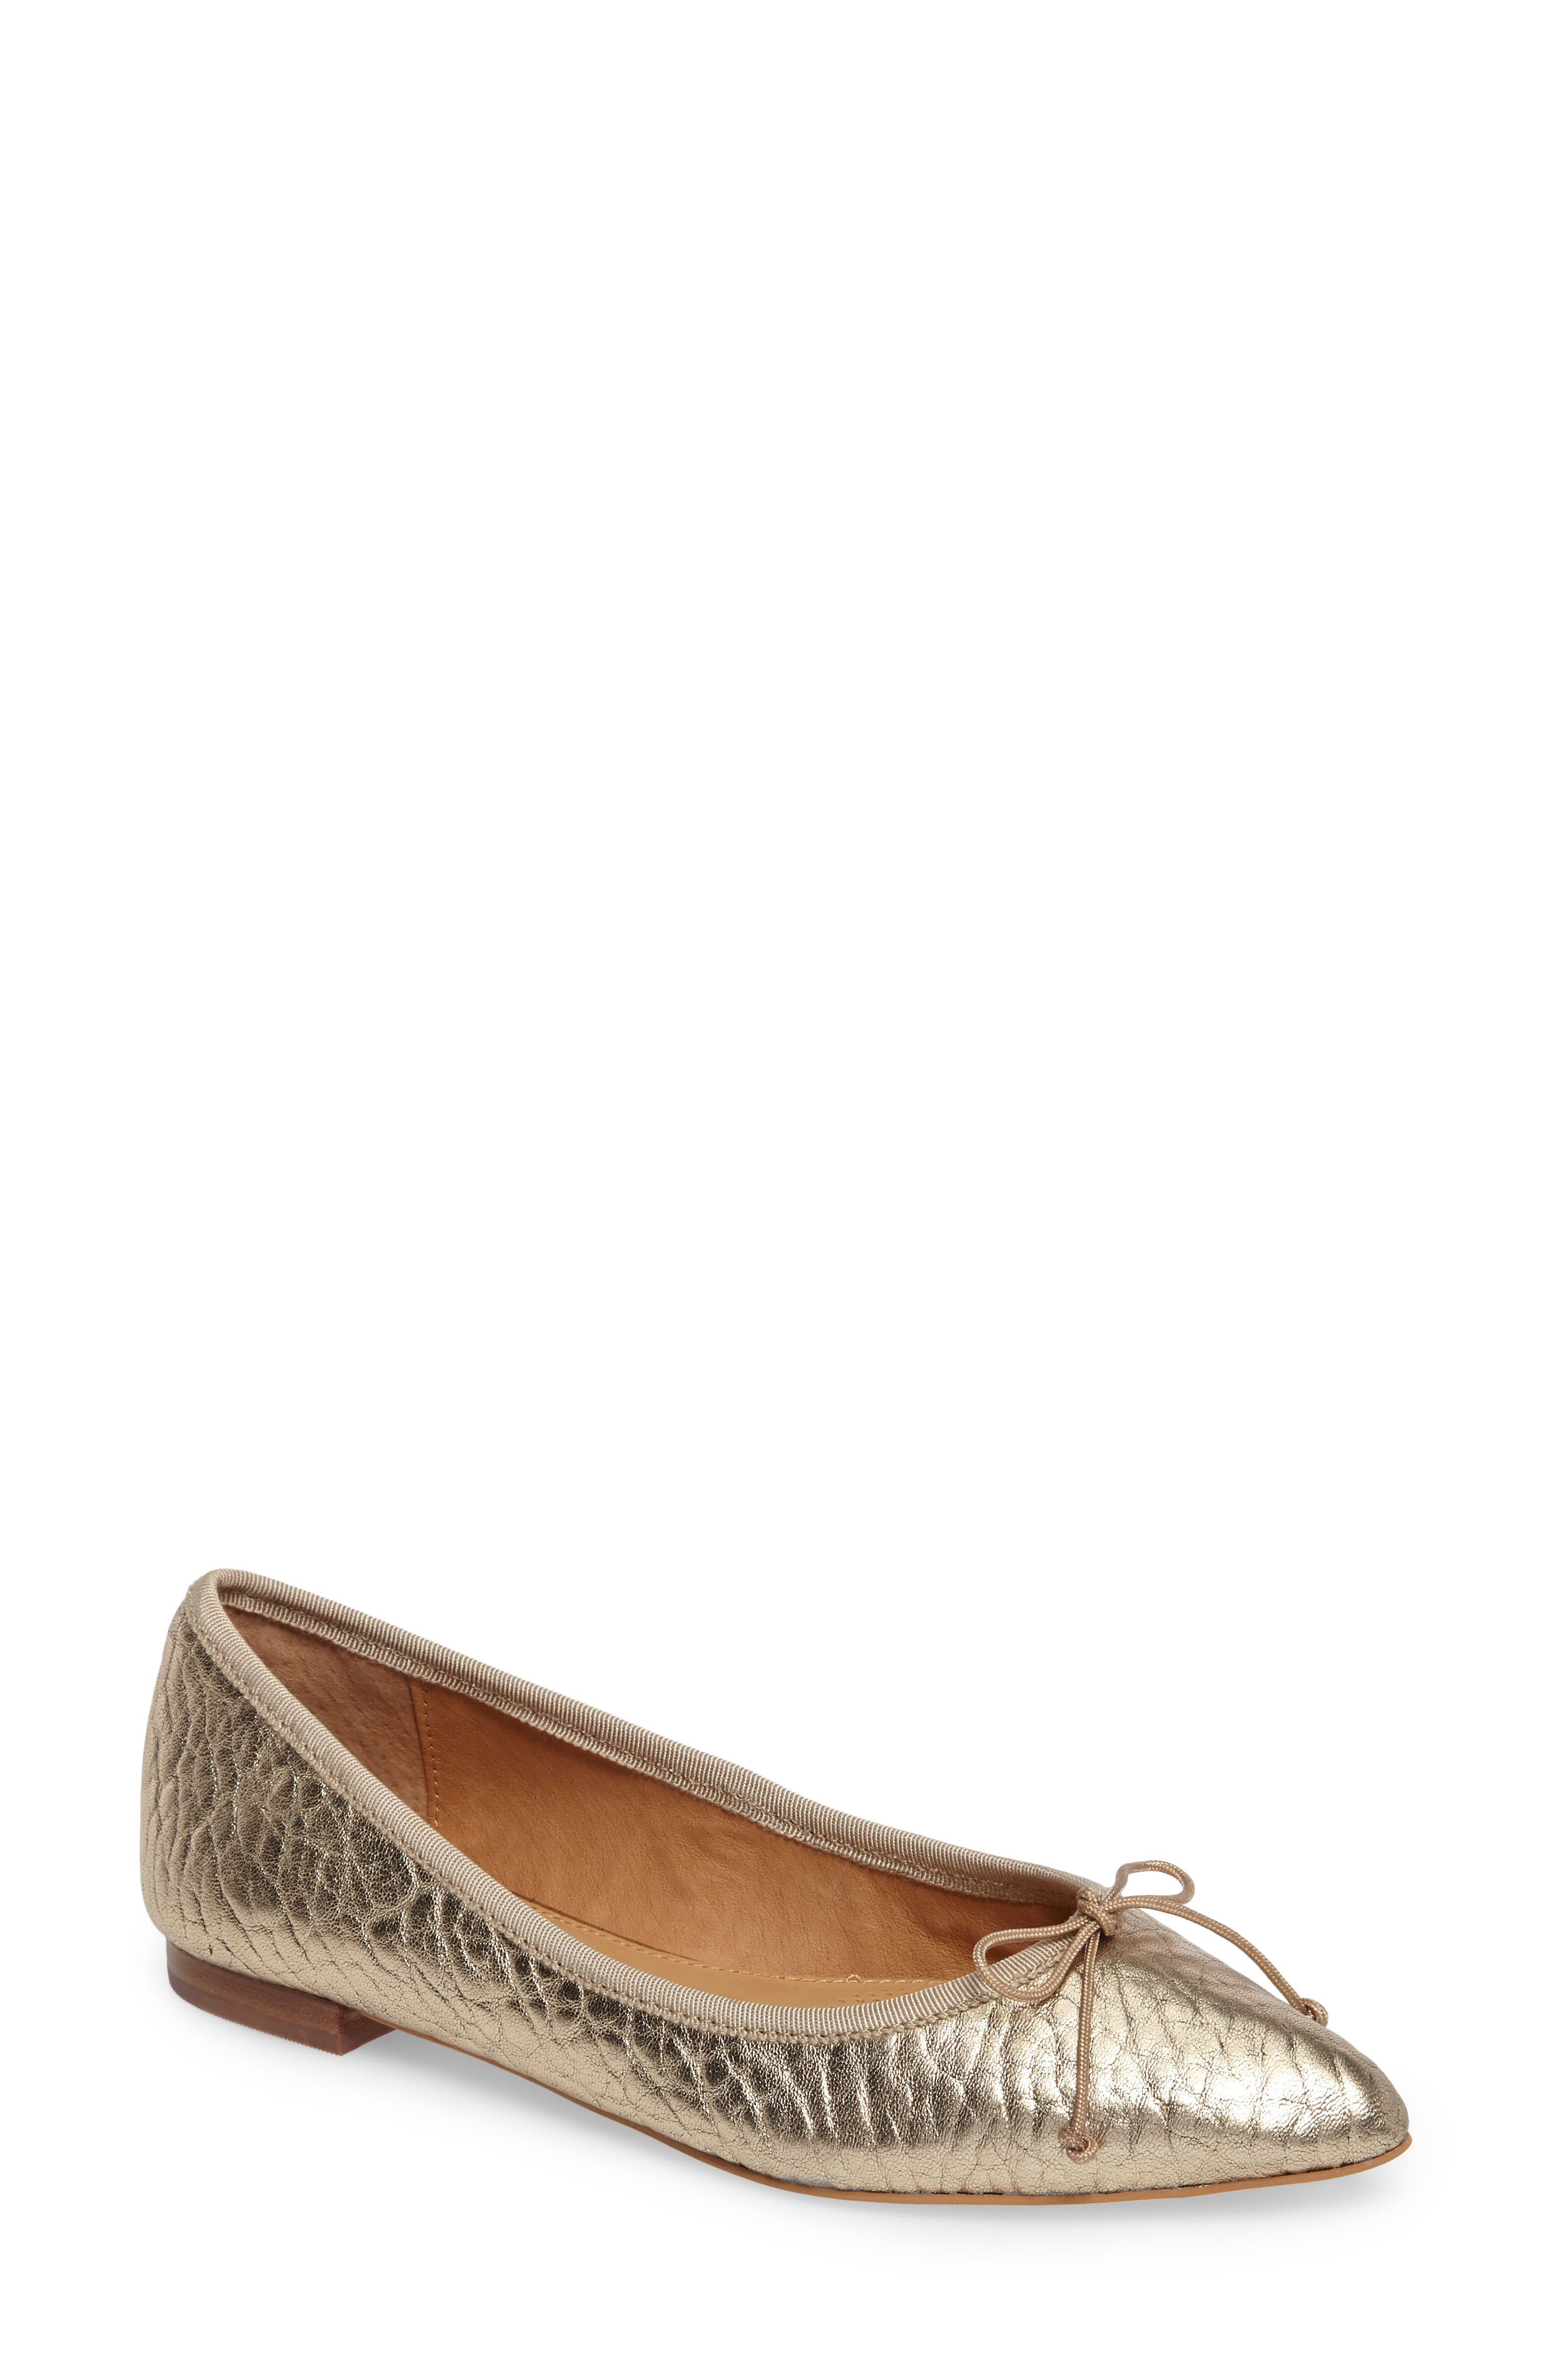 'Recital' Pointy Toe Flat,                         Main,                         color, Platinum Leather